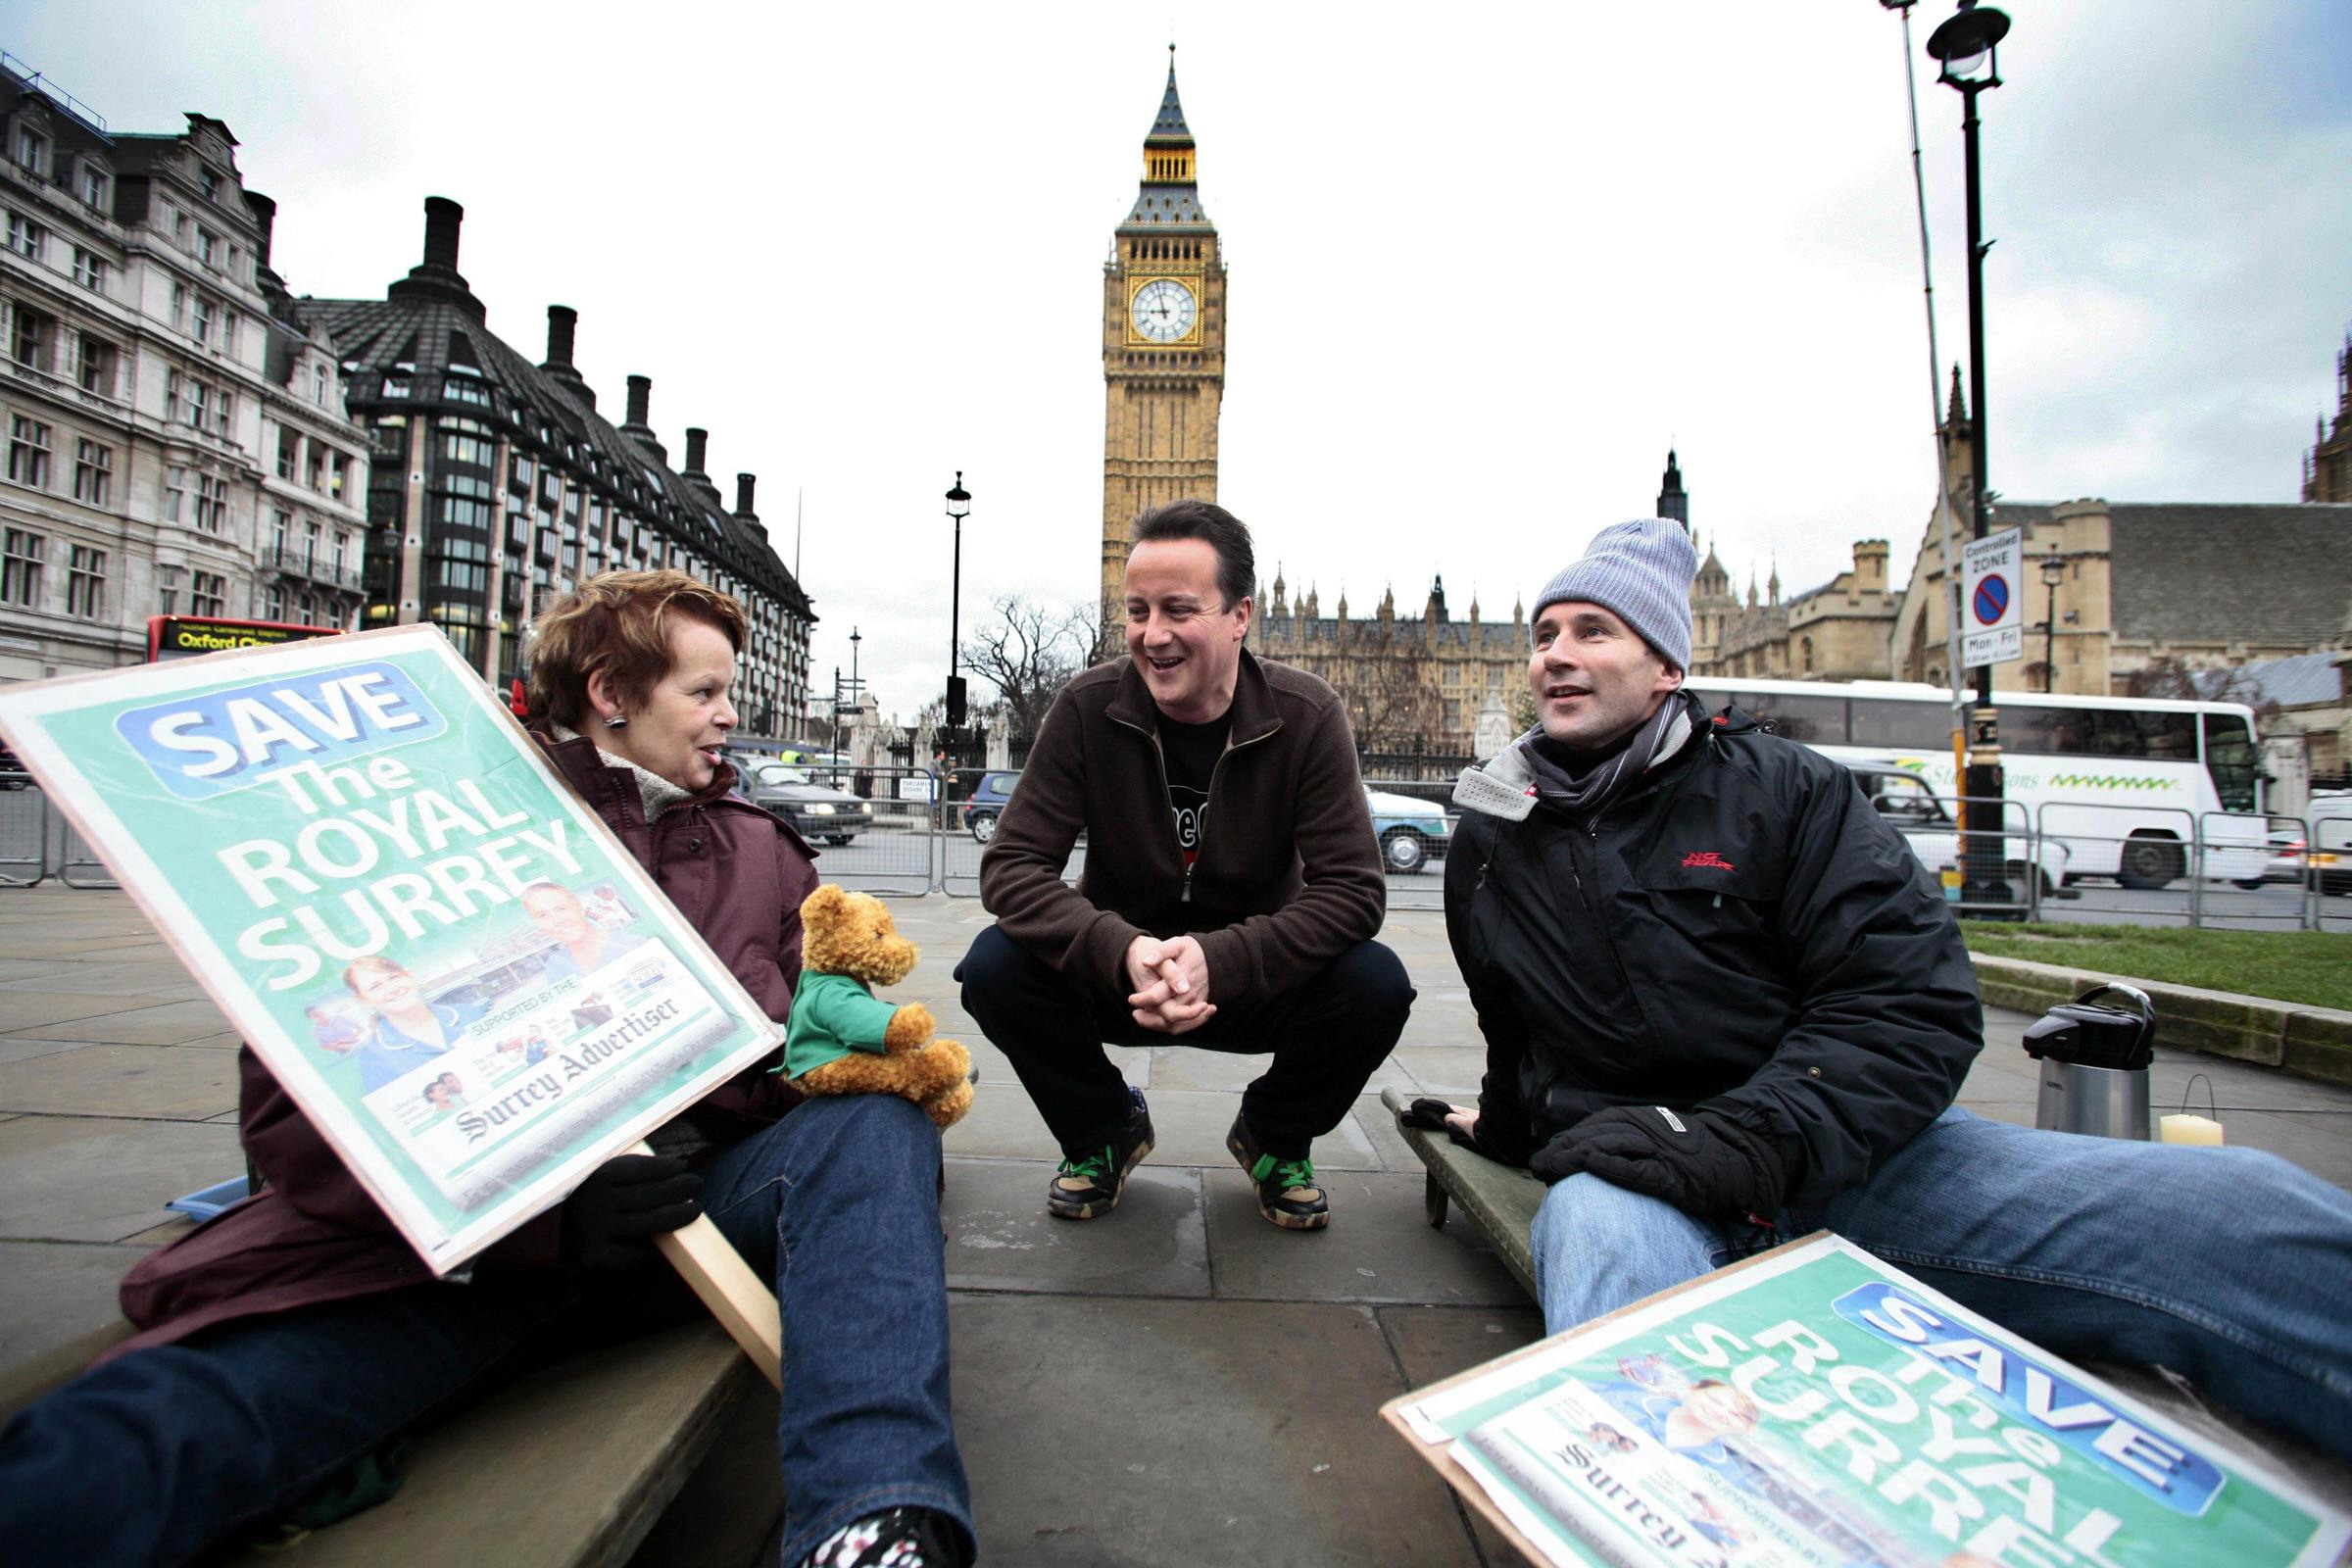 David Cameron meets Anne Milton and health secretary Jeremy Hunt MP in Parliament Square, after they stayed out all night for the campaign to save the Royal Surrey Hospital